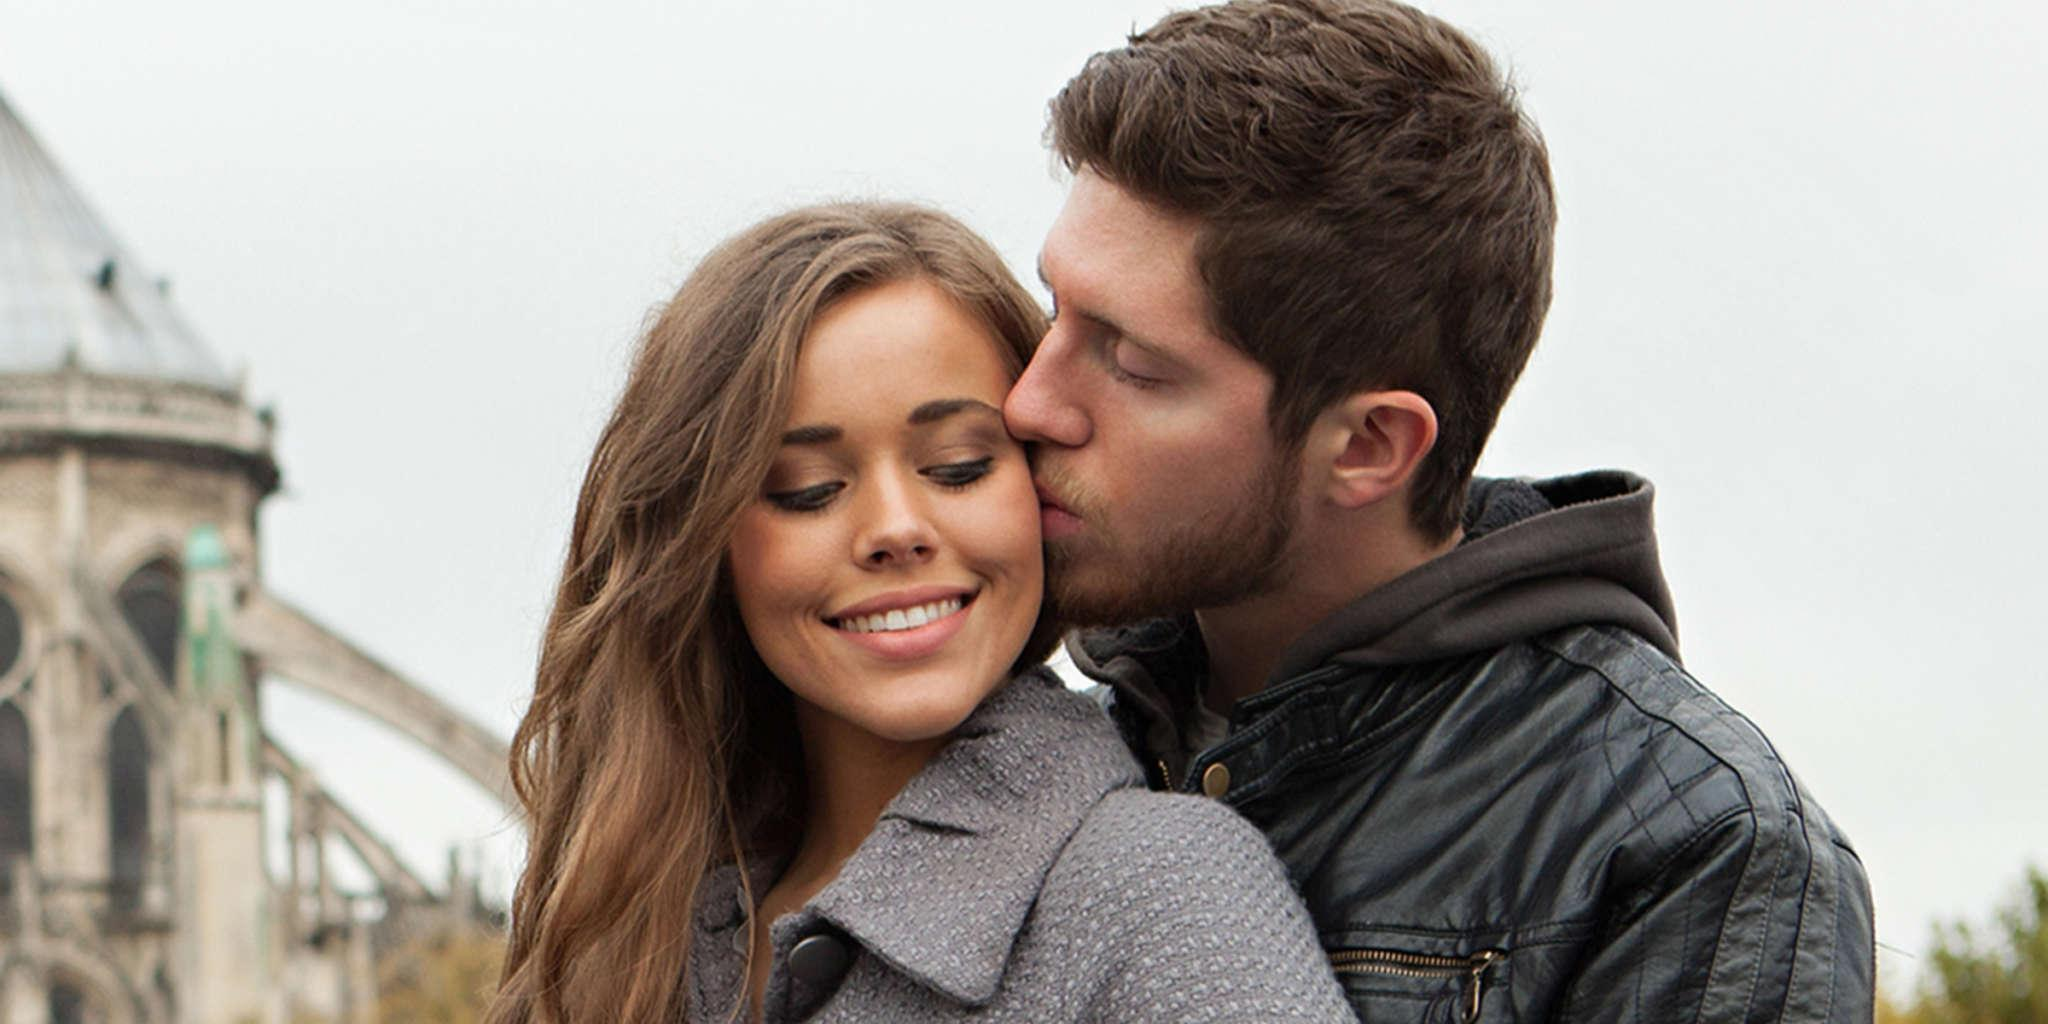 Jessa Duggar Gives Birth On Her Couch And Gets Rushed To The Hospital After Complications